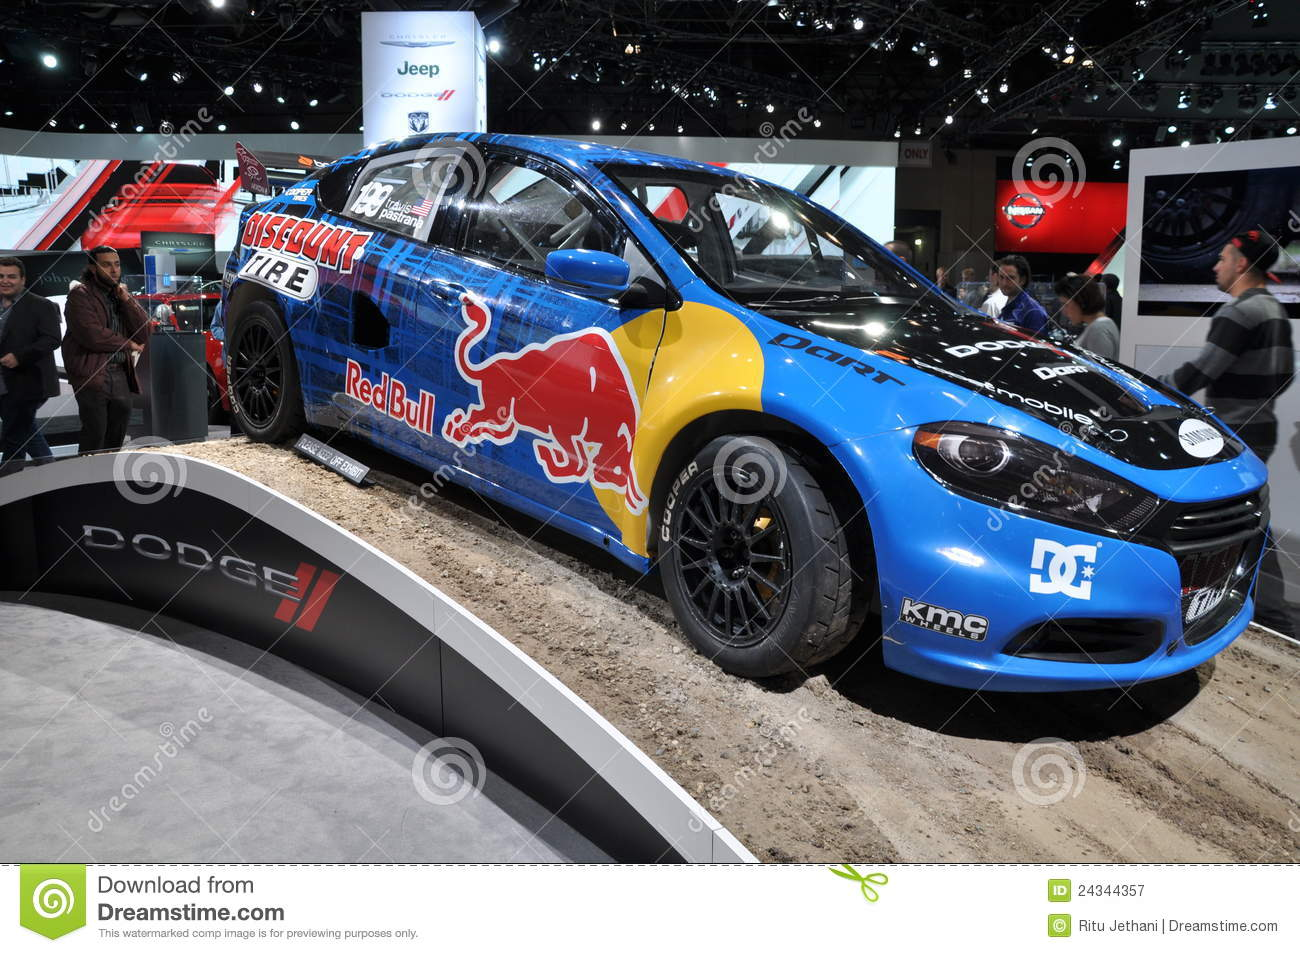 voiture de dodge red bull photographie ditorial image du sports 24344357. Black Bedroom Furniture Sets. Home Design Ideas